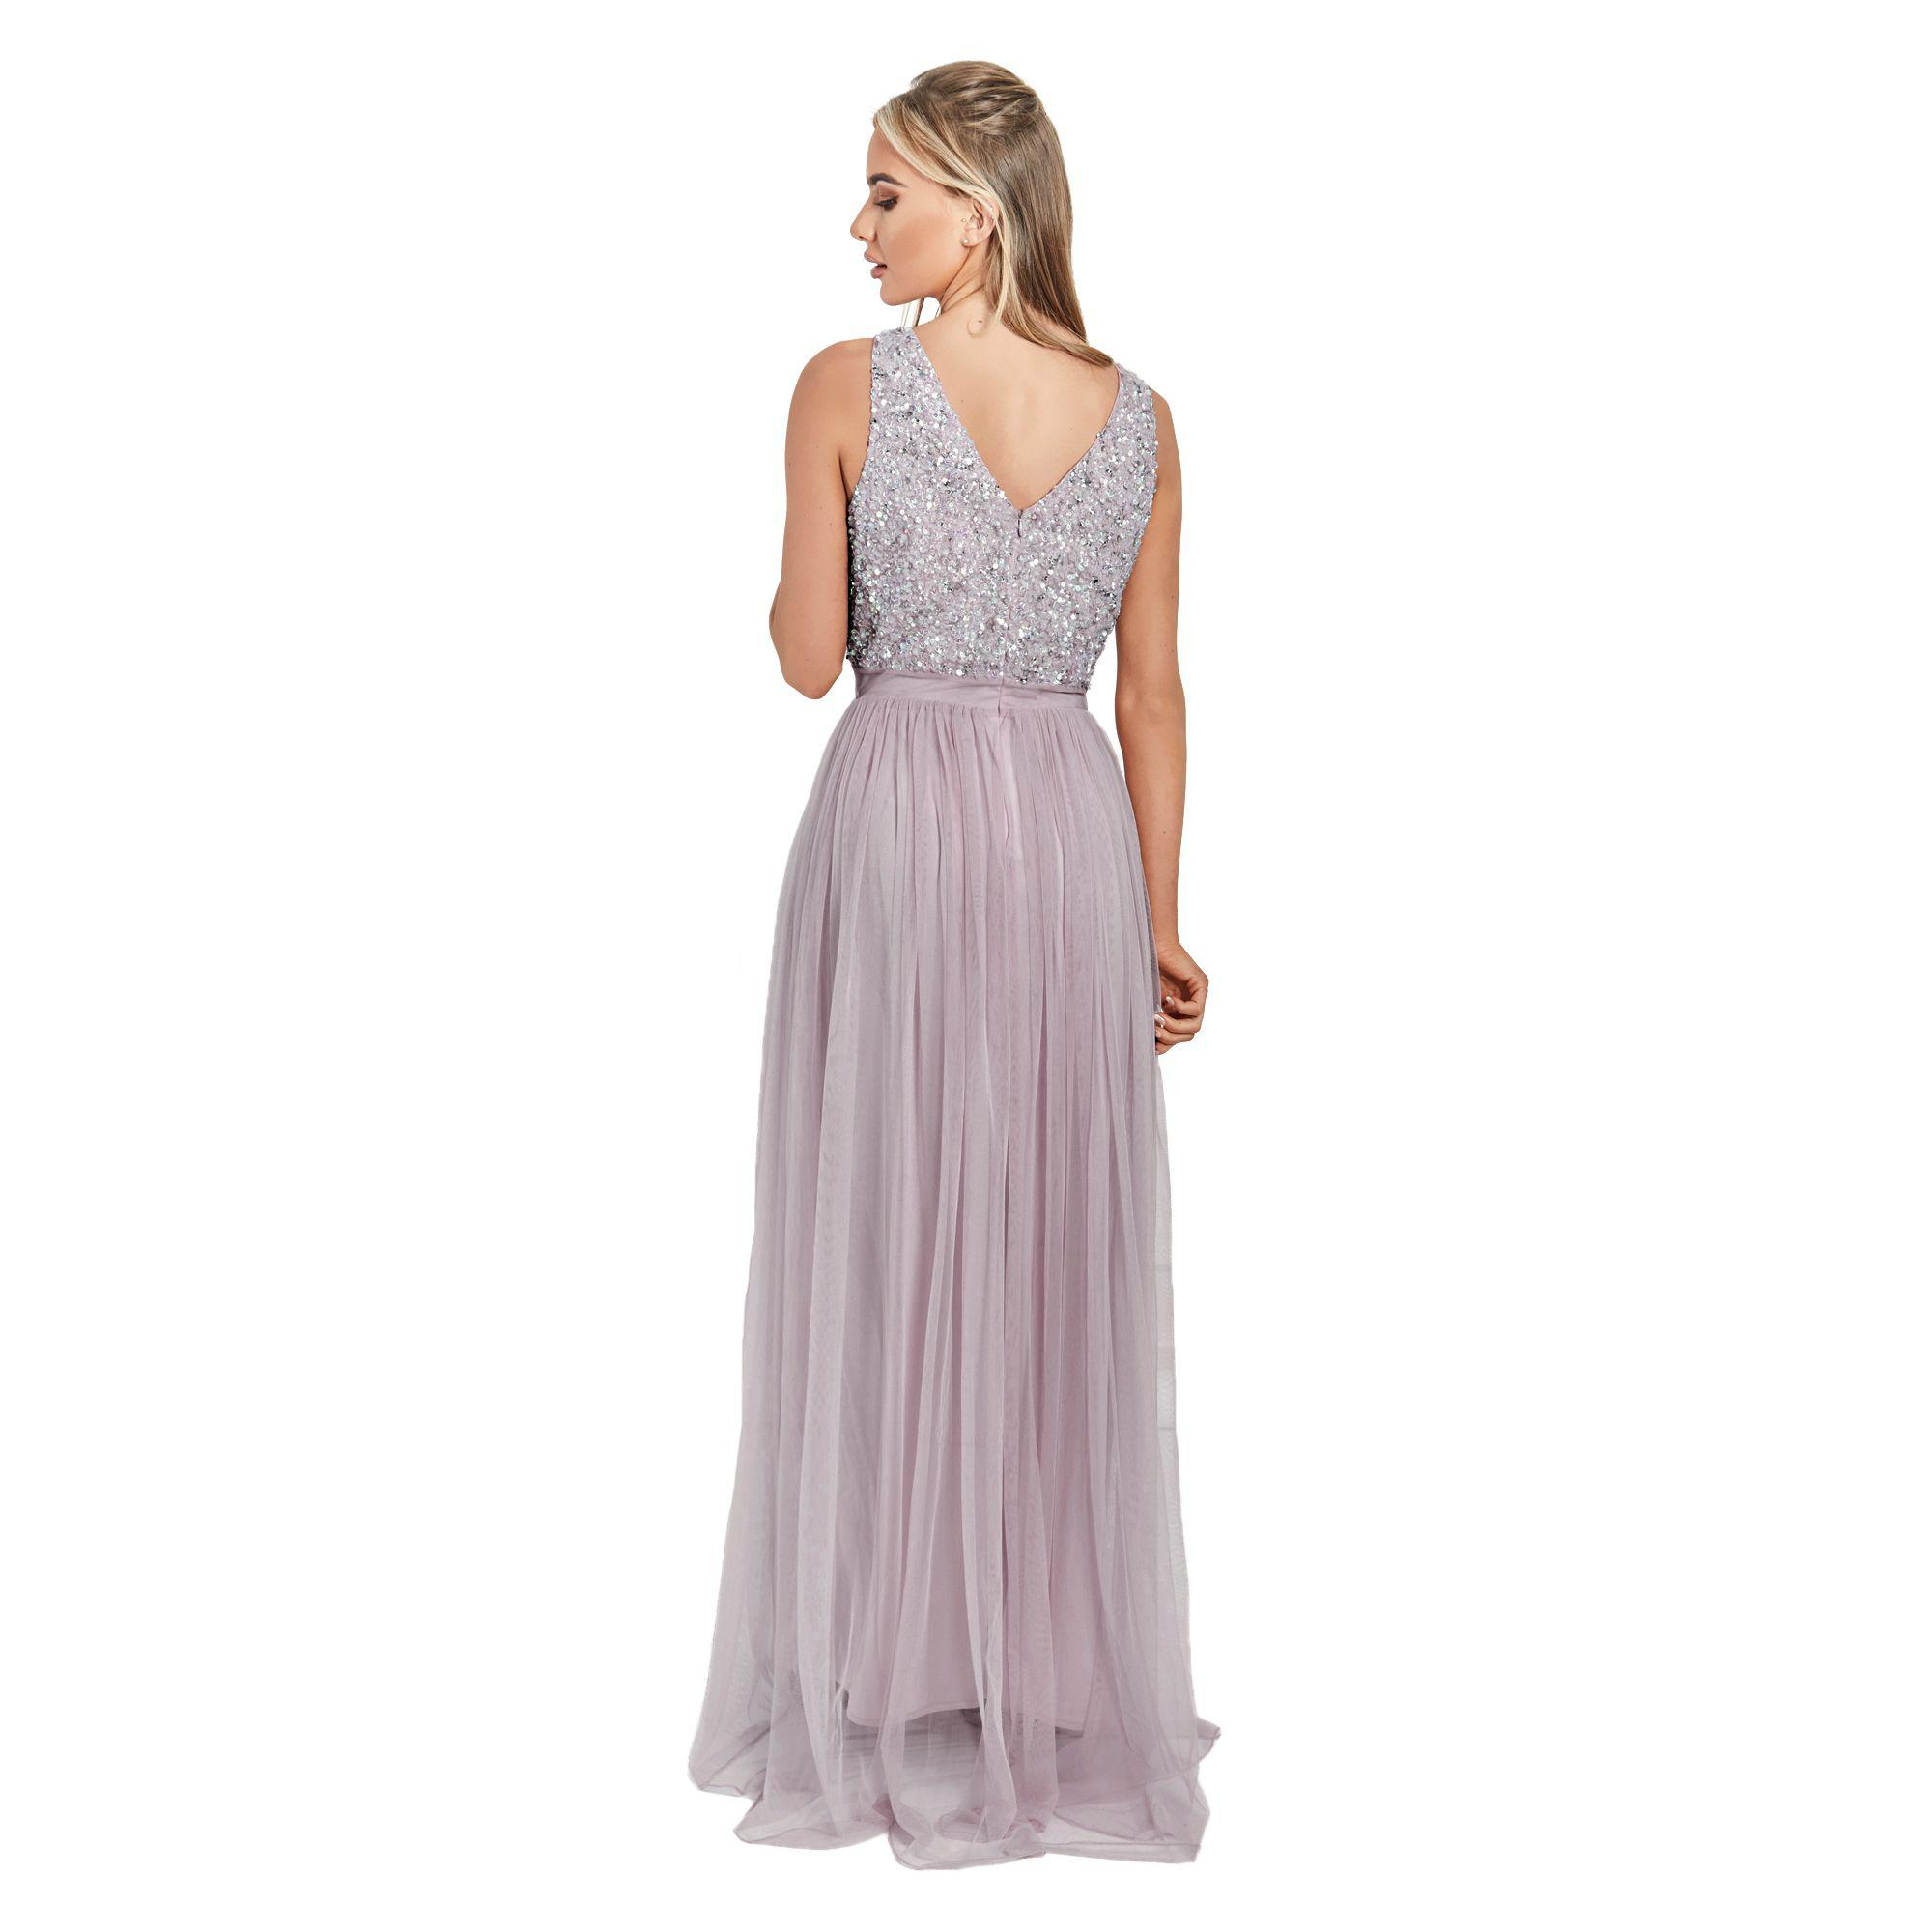 225632be Lipstick Boutique - Purple Lilac Sequin 'yasmin' V-neck Detailed Top Tiered  Bridesmaid. View fullscreen